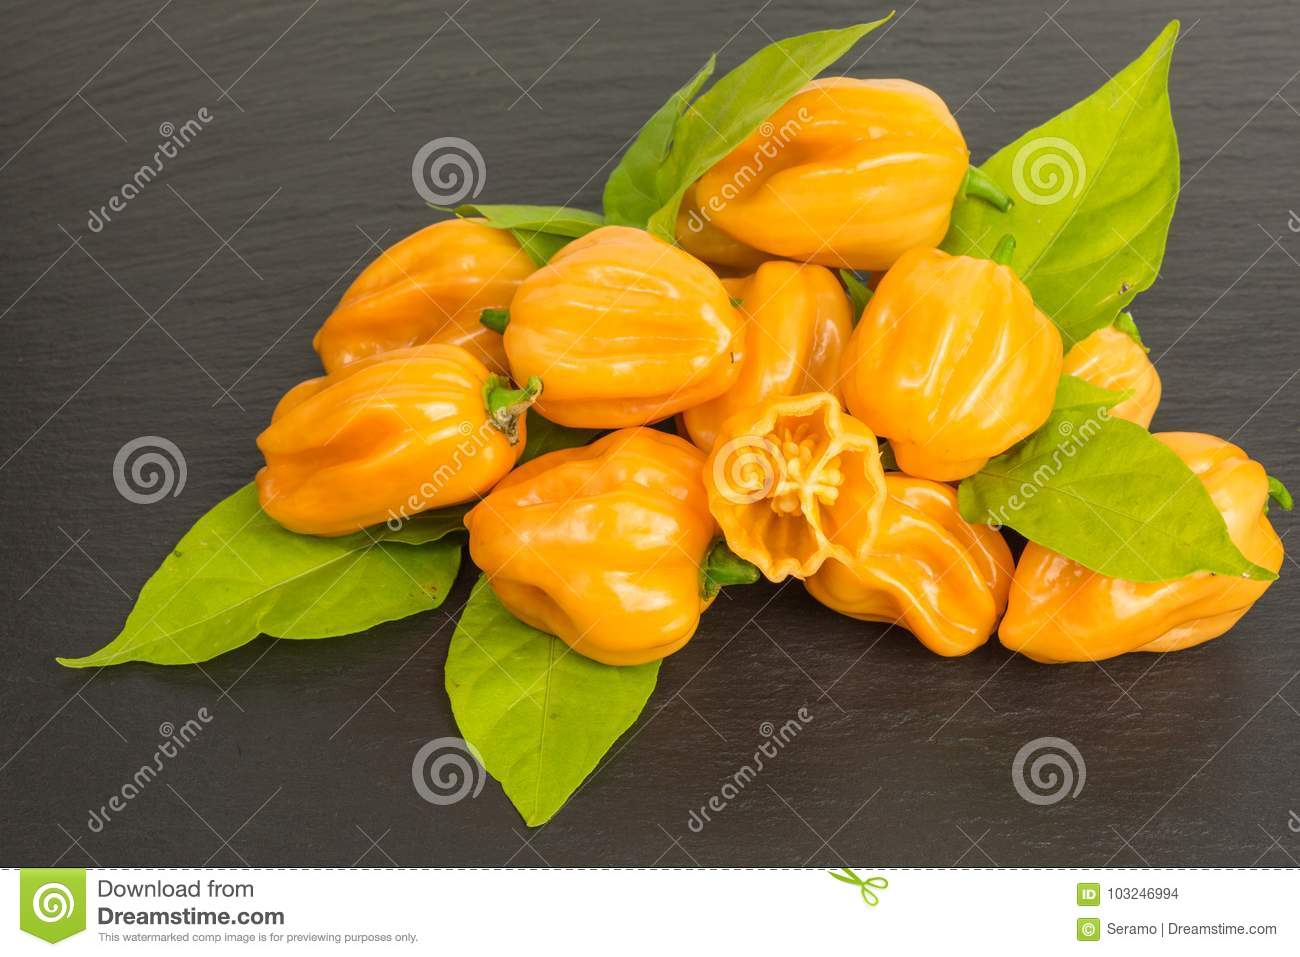 Chili pepper habaneros stock photo  Image of healthy - 103246994